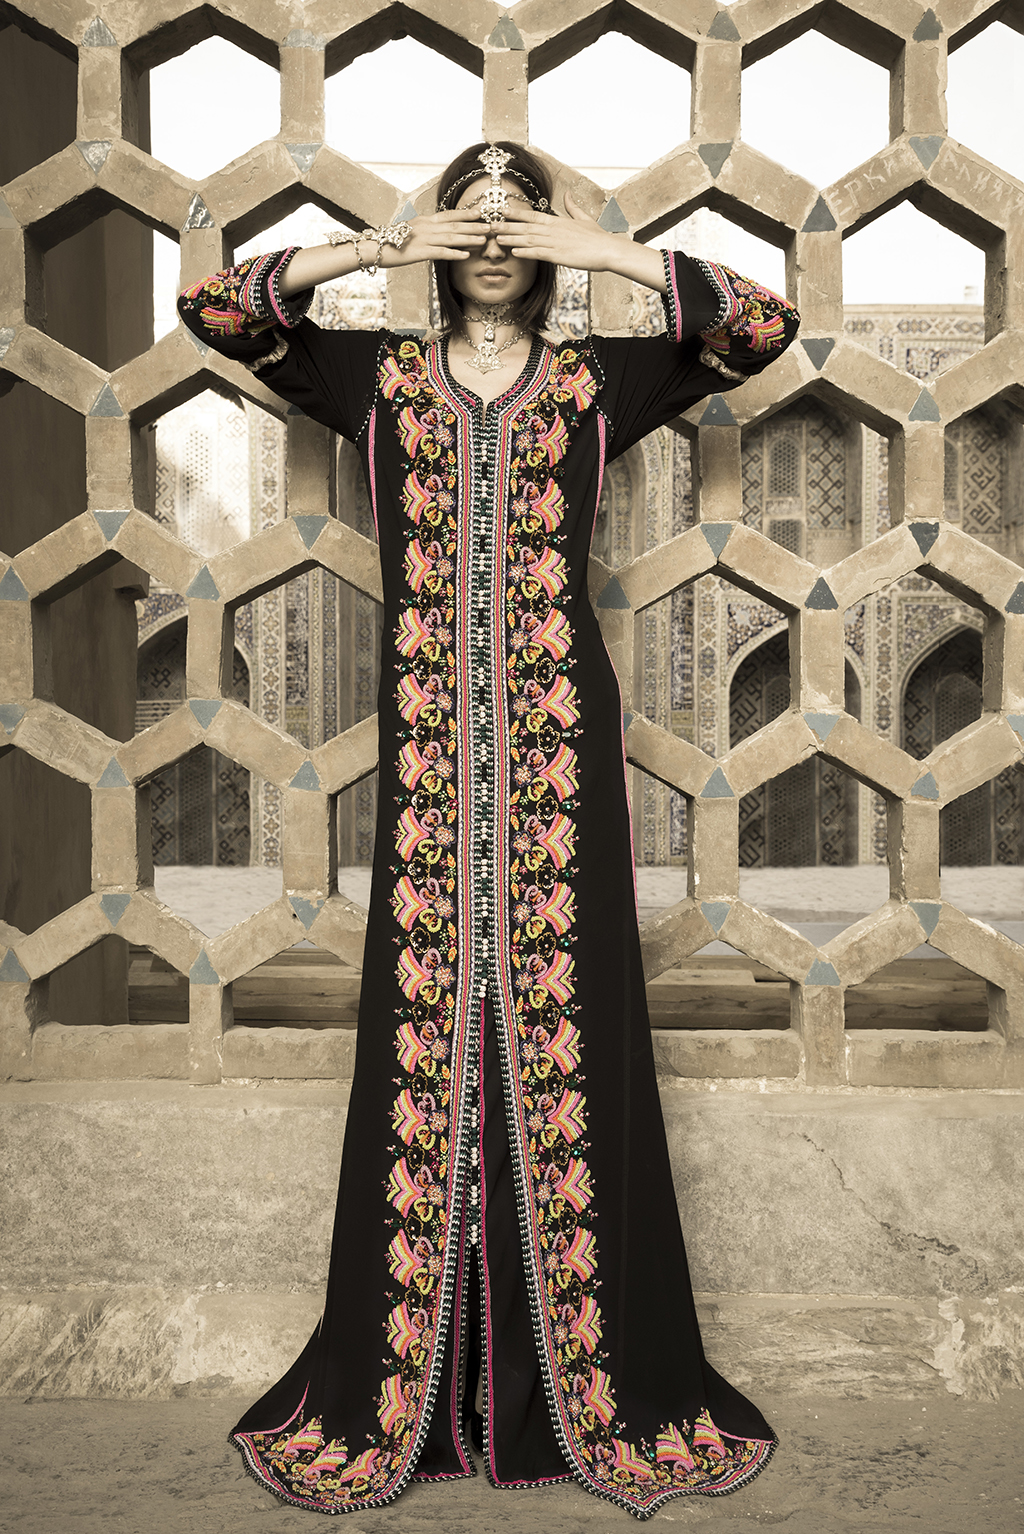 Photo shoot for FBK couture in Samarkand, Uzbekistan, for Al-Sharkiah magazine.